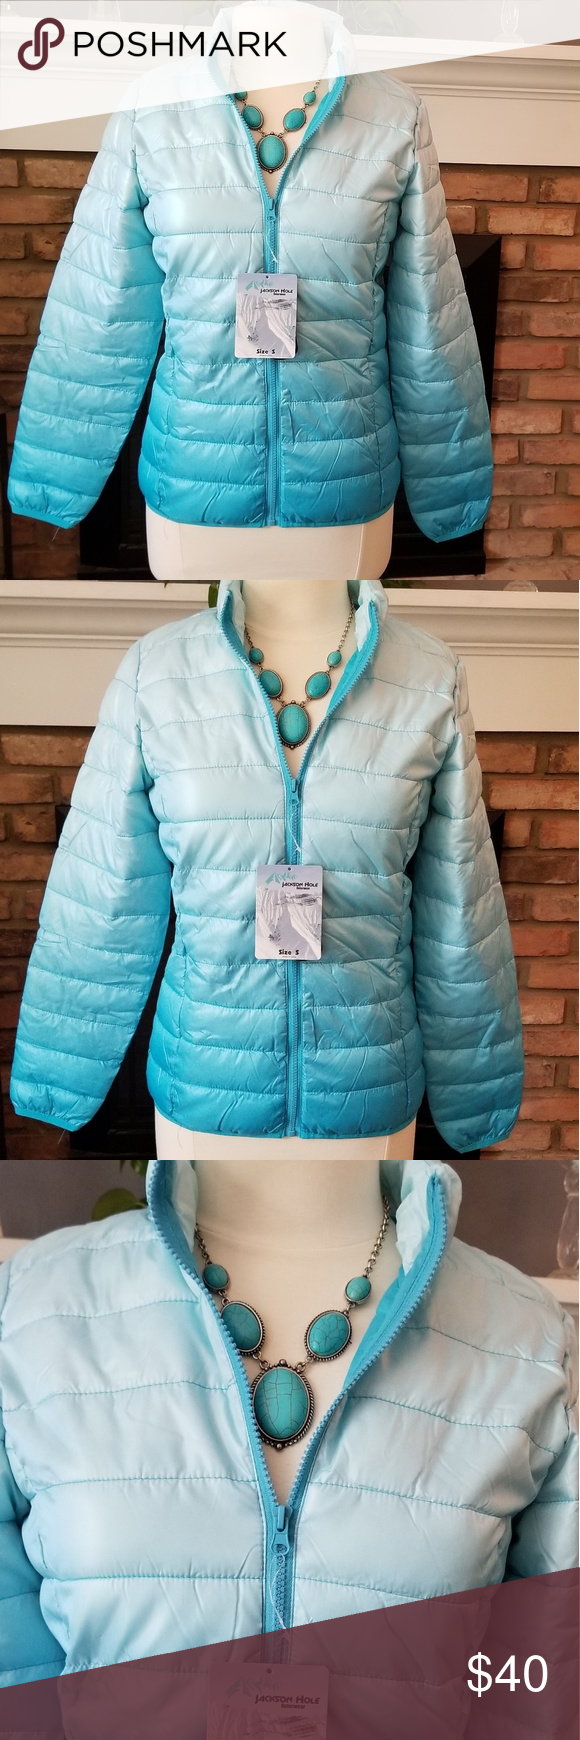 Jackson Hole Ombre Teal Puffer Small Jacket Jacket Brands Clothes Design Fashion [ 1740 x 580 Pixel ]